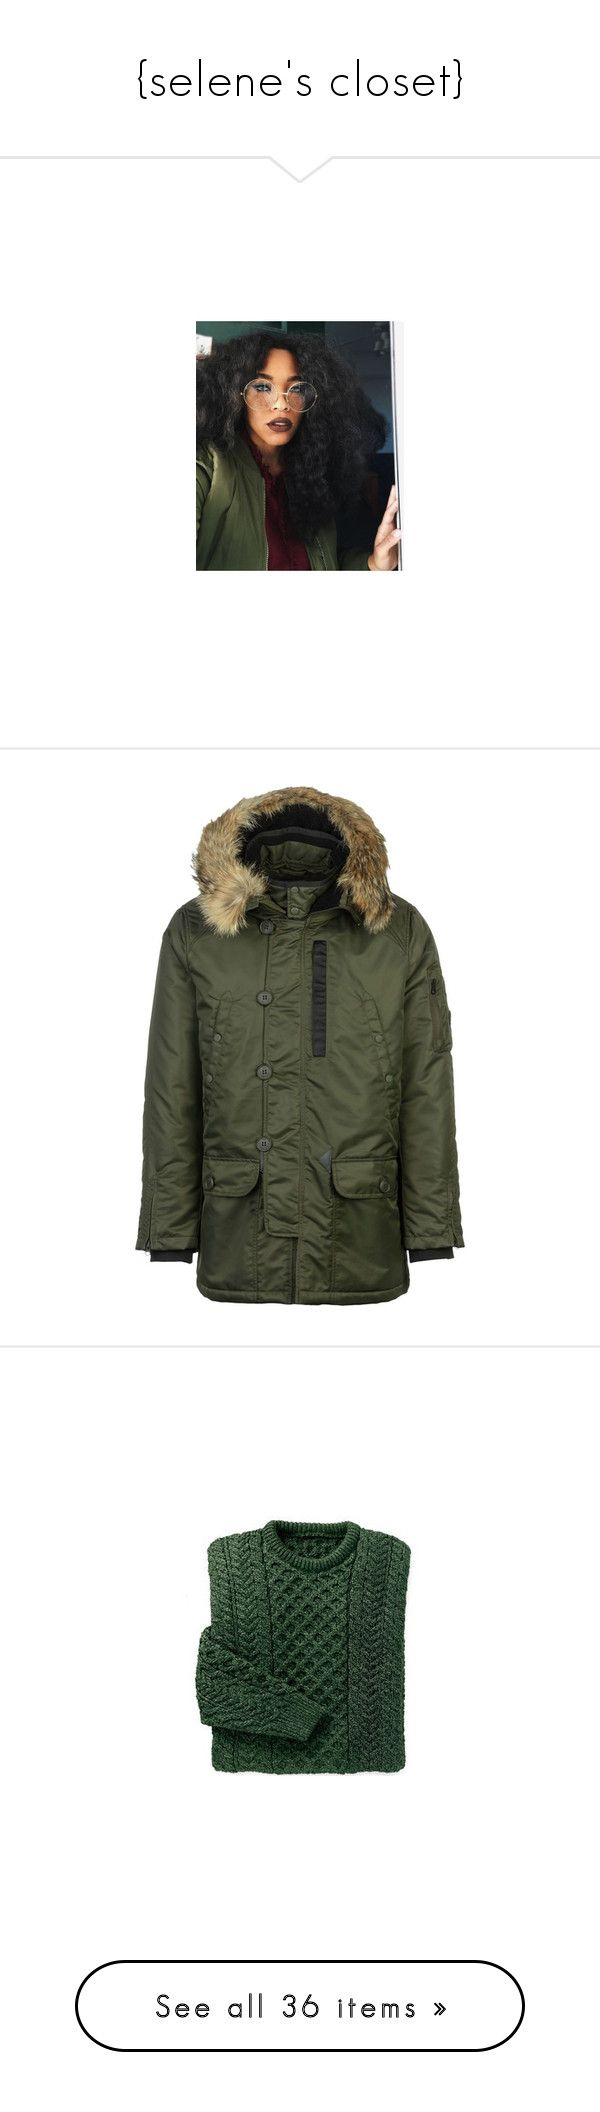 """{selene's closet}"" by etherealmoonfire ❤ liked on Polyvore featuring men's fashion, men's clothing, men's outerwear, men's coats, mens fur coat, mens parka coats, mens hooded parka, mens hooded coats, mens insulated coats and tops"